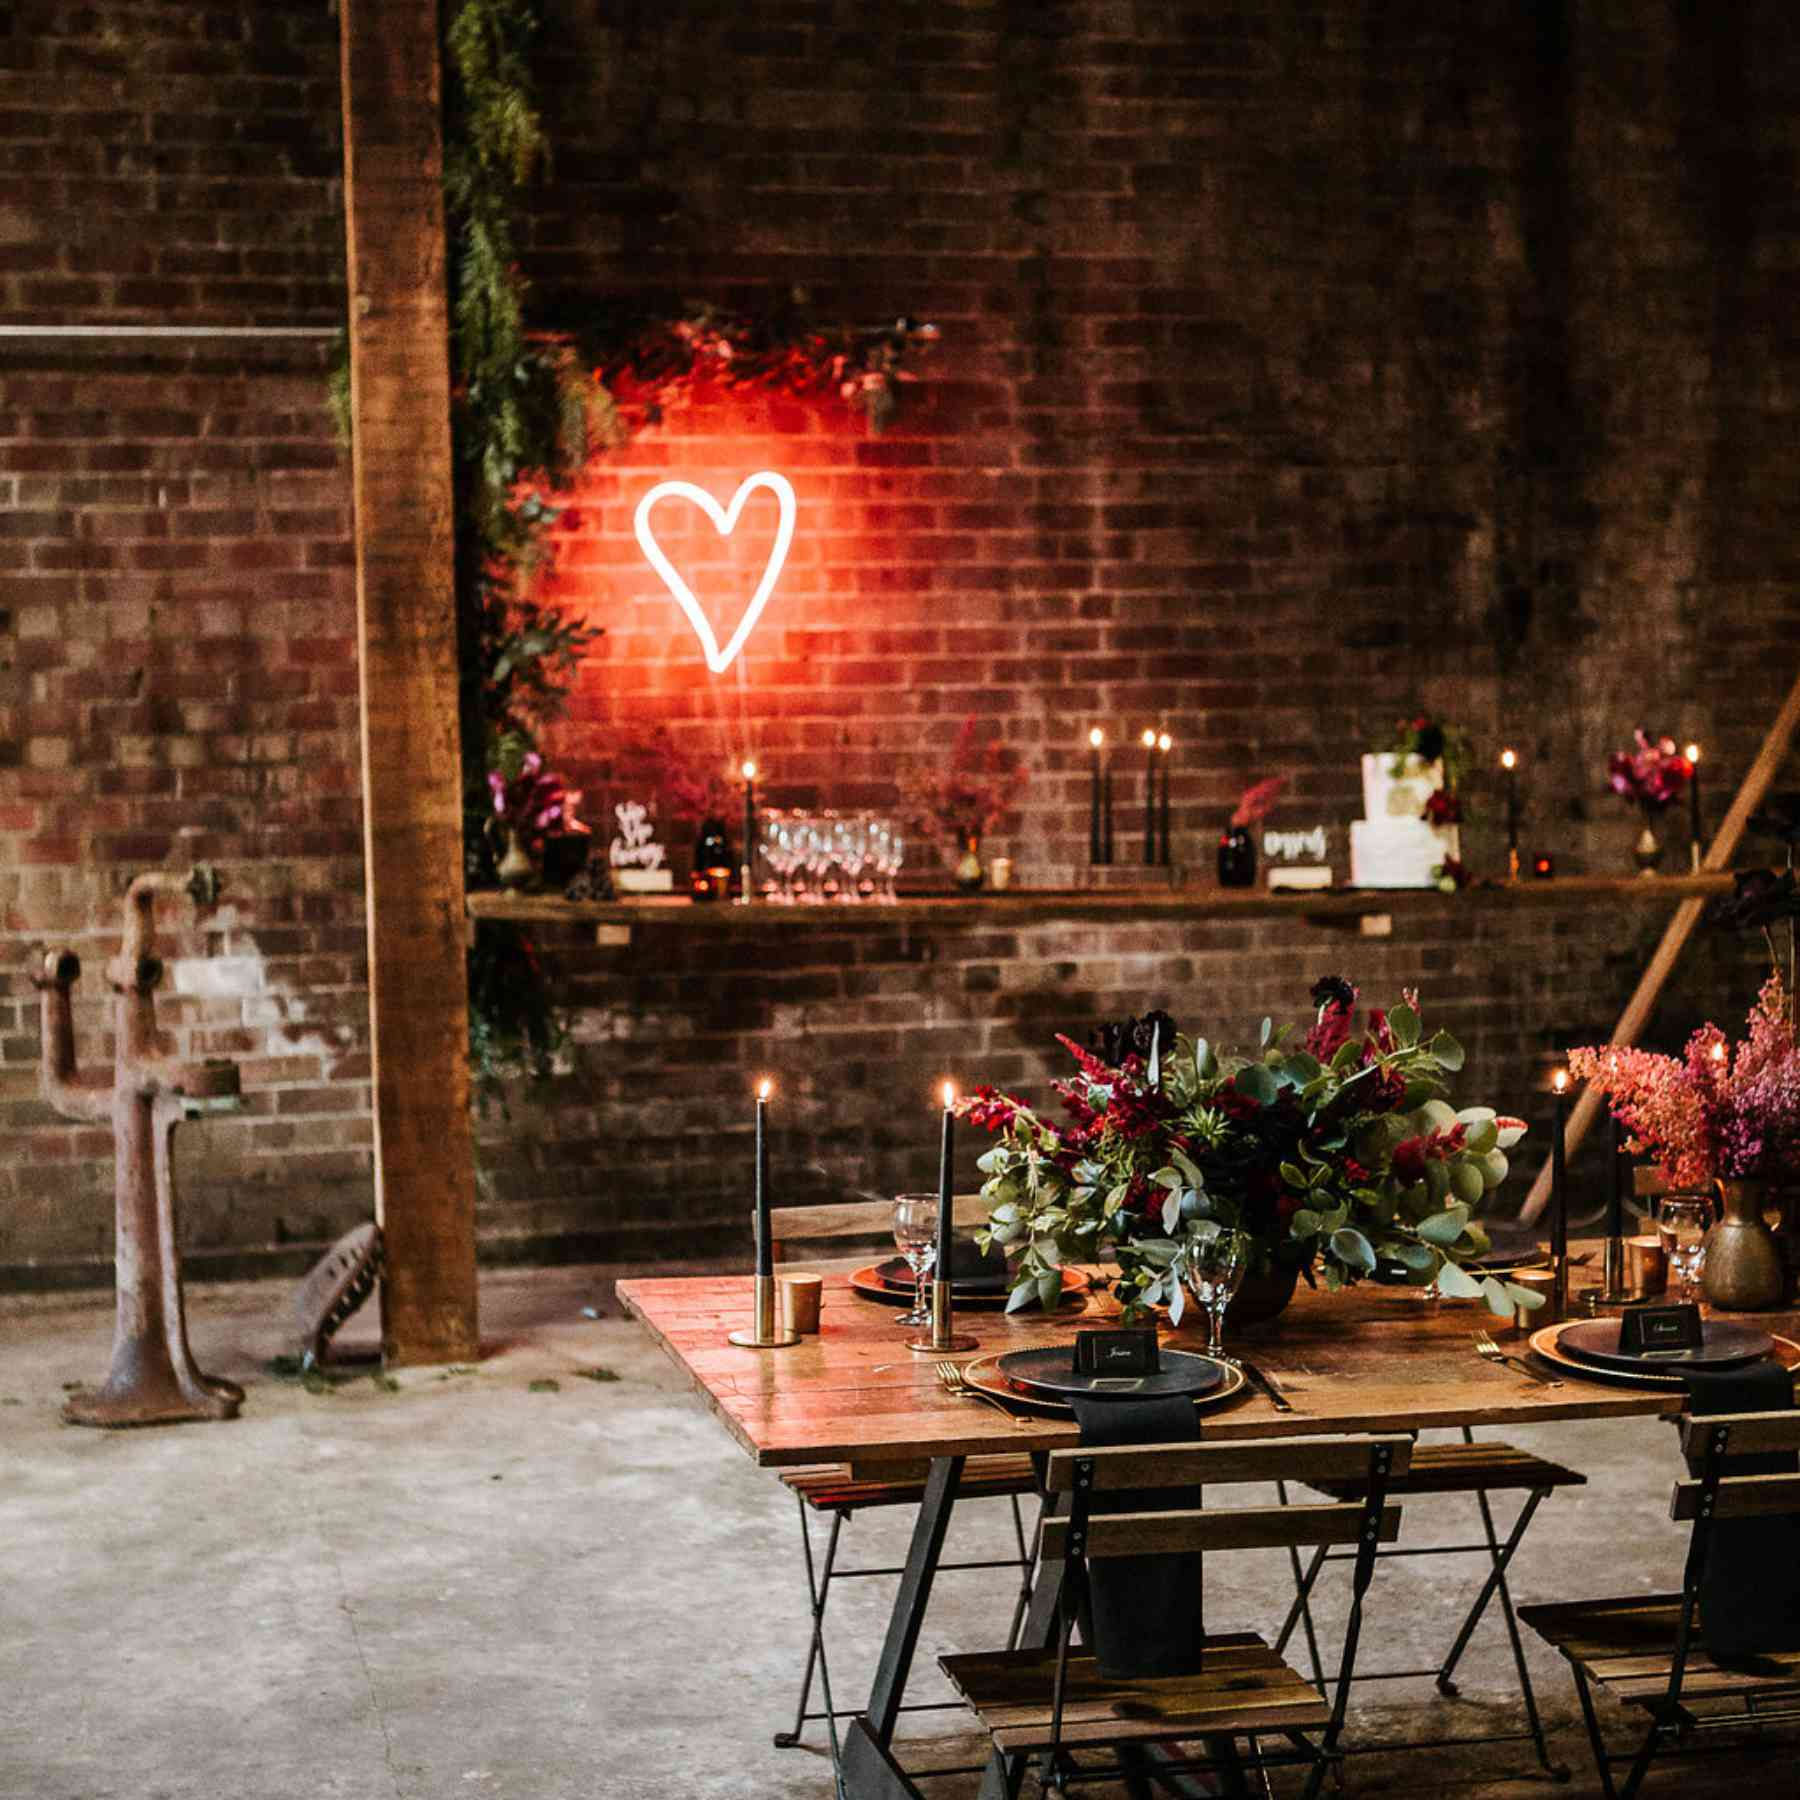 A red heart-shaped neon light in a dimly lit reception room